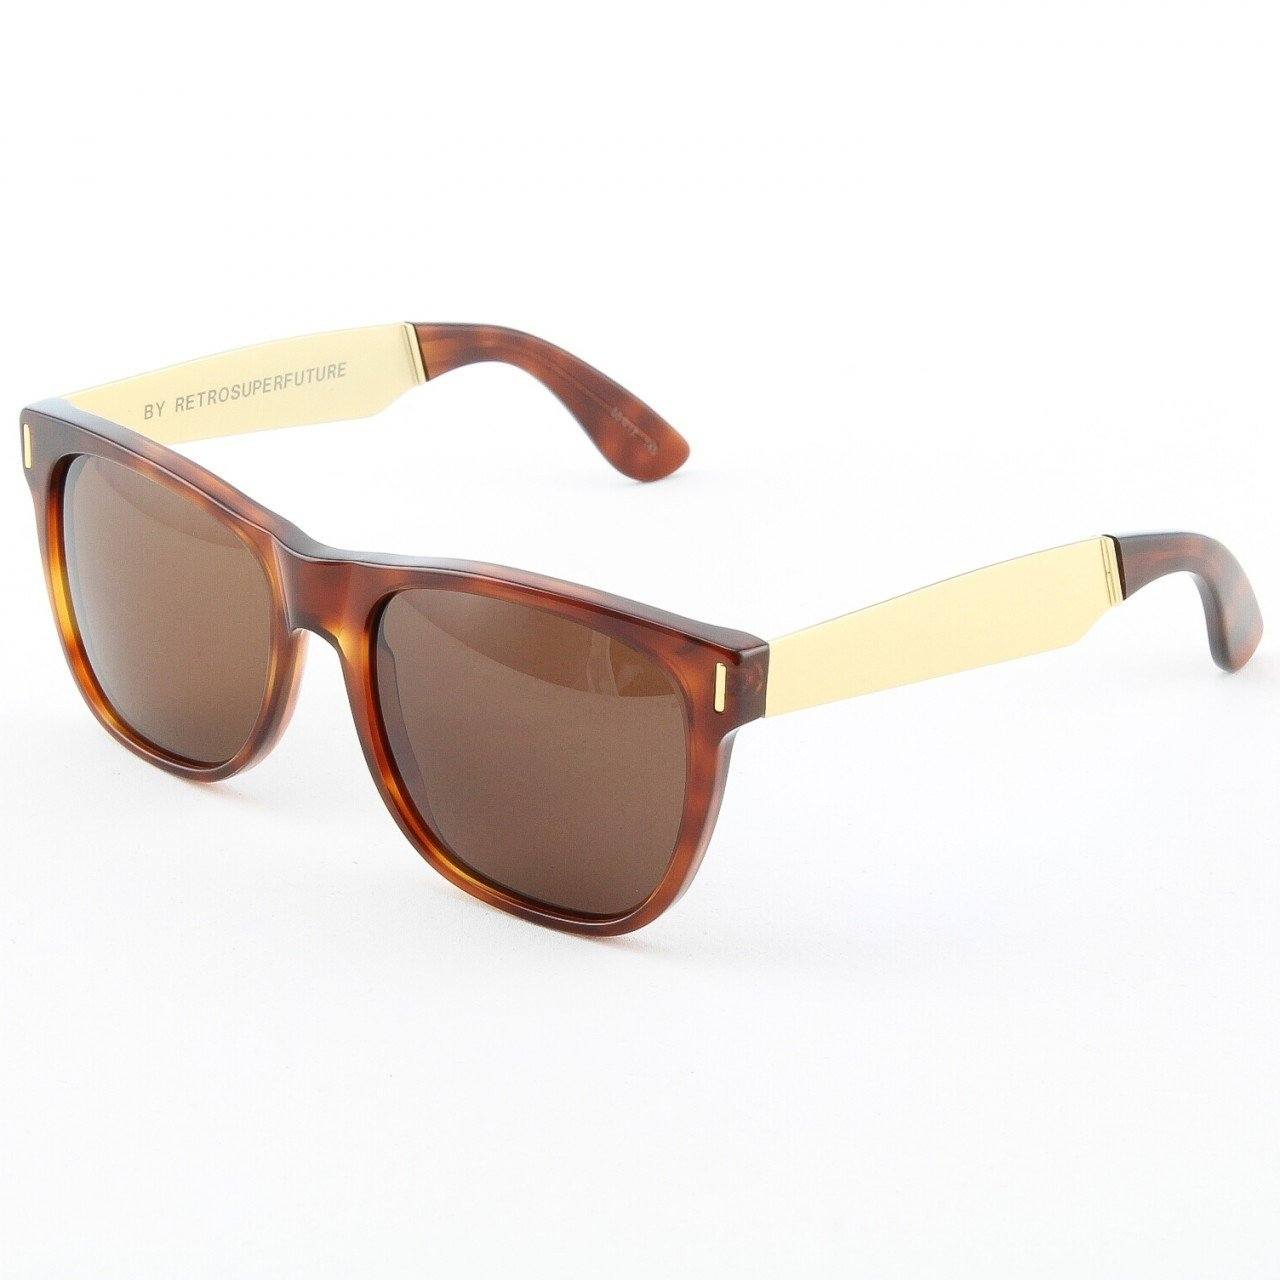 Retro Super Future 364 364 Classic Havana/Y Gold Basic Wayfarer Sunglasses